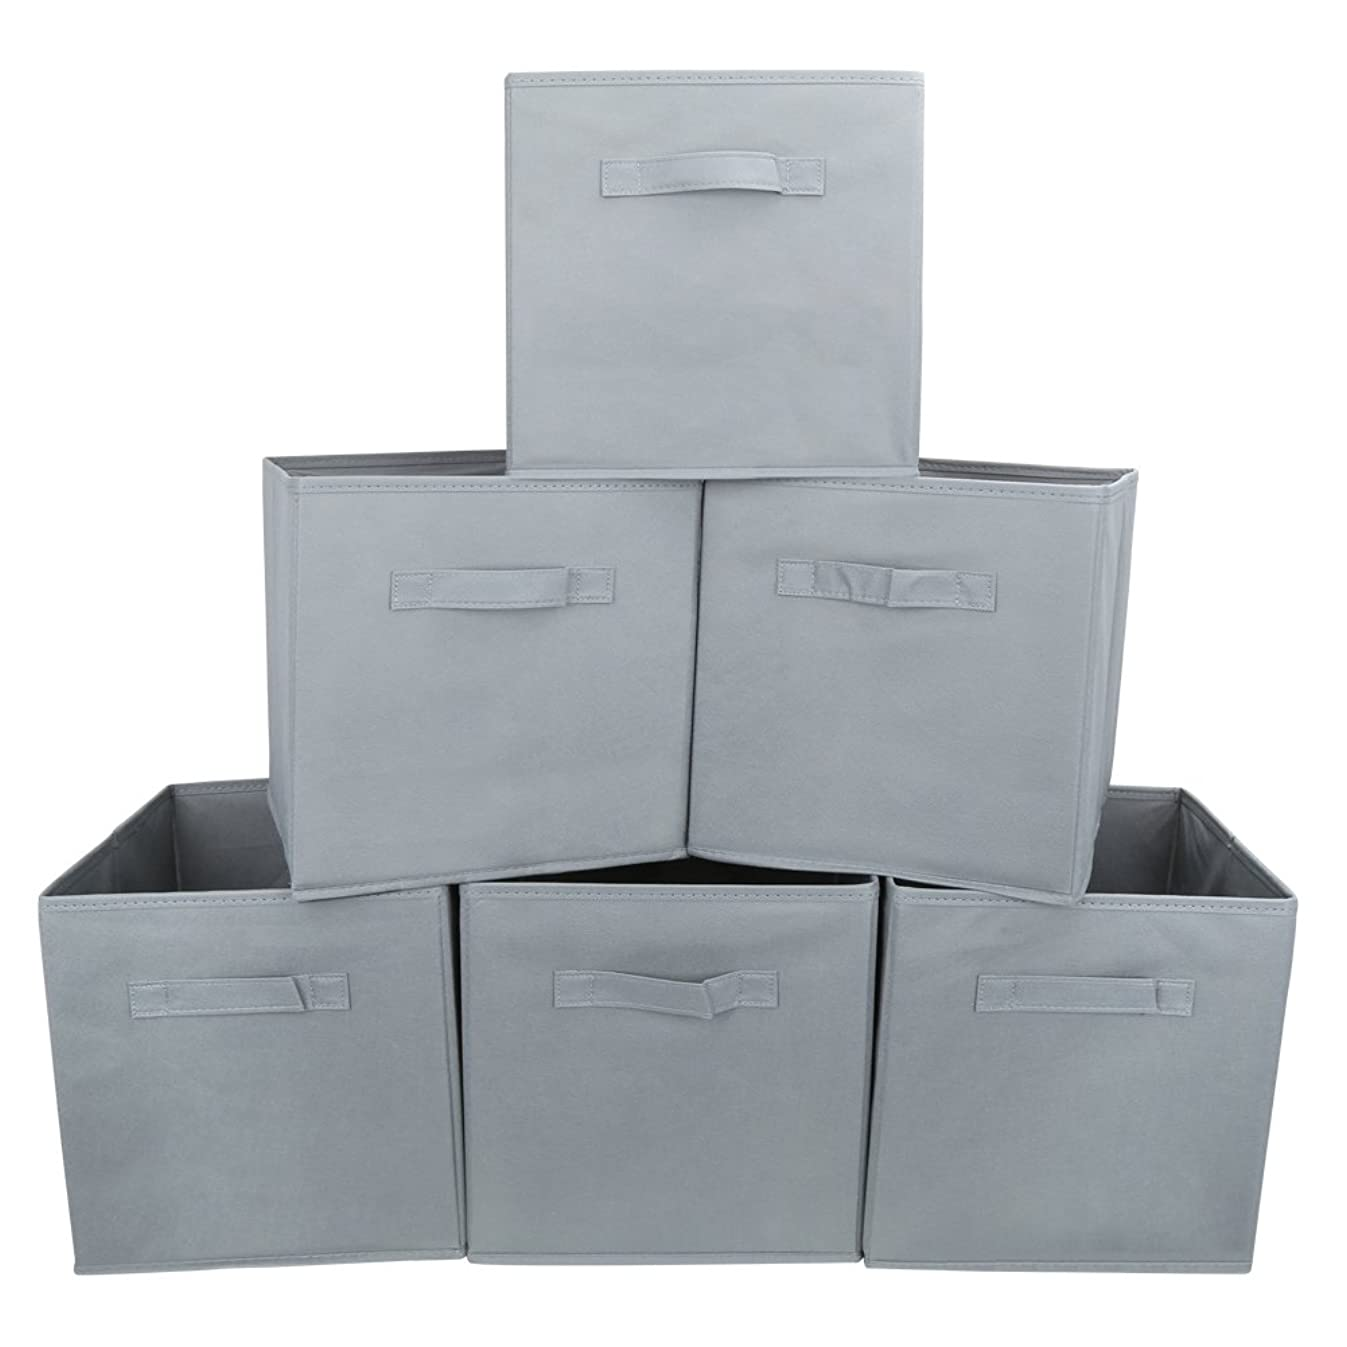 EZOWare Set of 6 Basket Bins Collapsible Storage Organizer Boxes Cube for Nursery Home - (Gray)